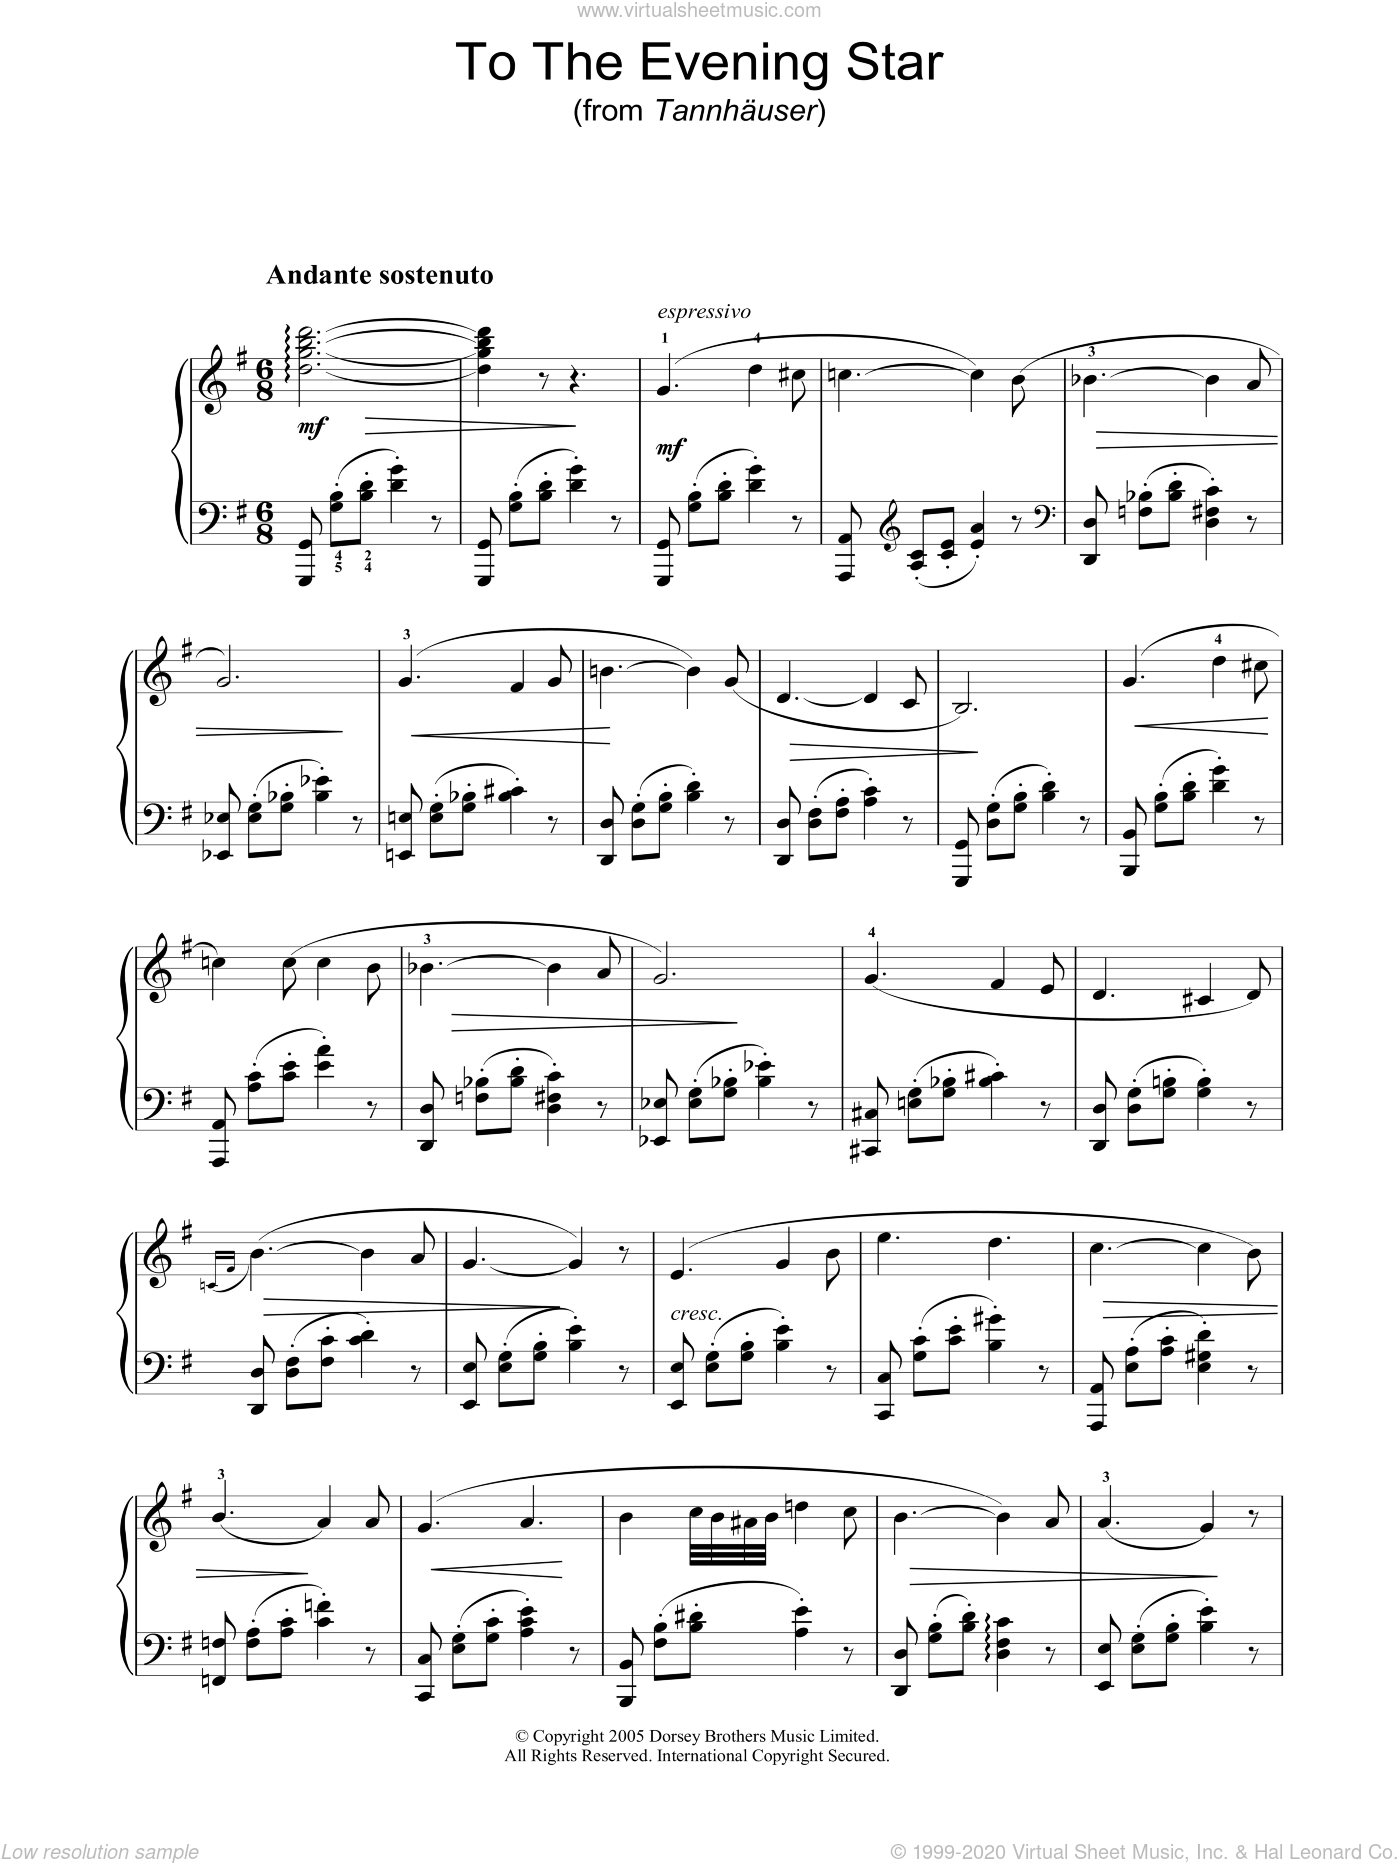 To The Evening Star (from Tannhauser) sheet music for piano solo by Richard Wagner, classical score, intermediate skill level